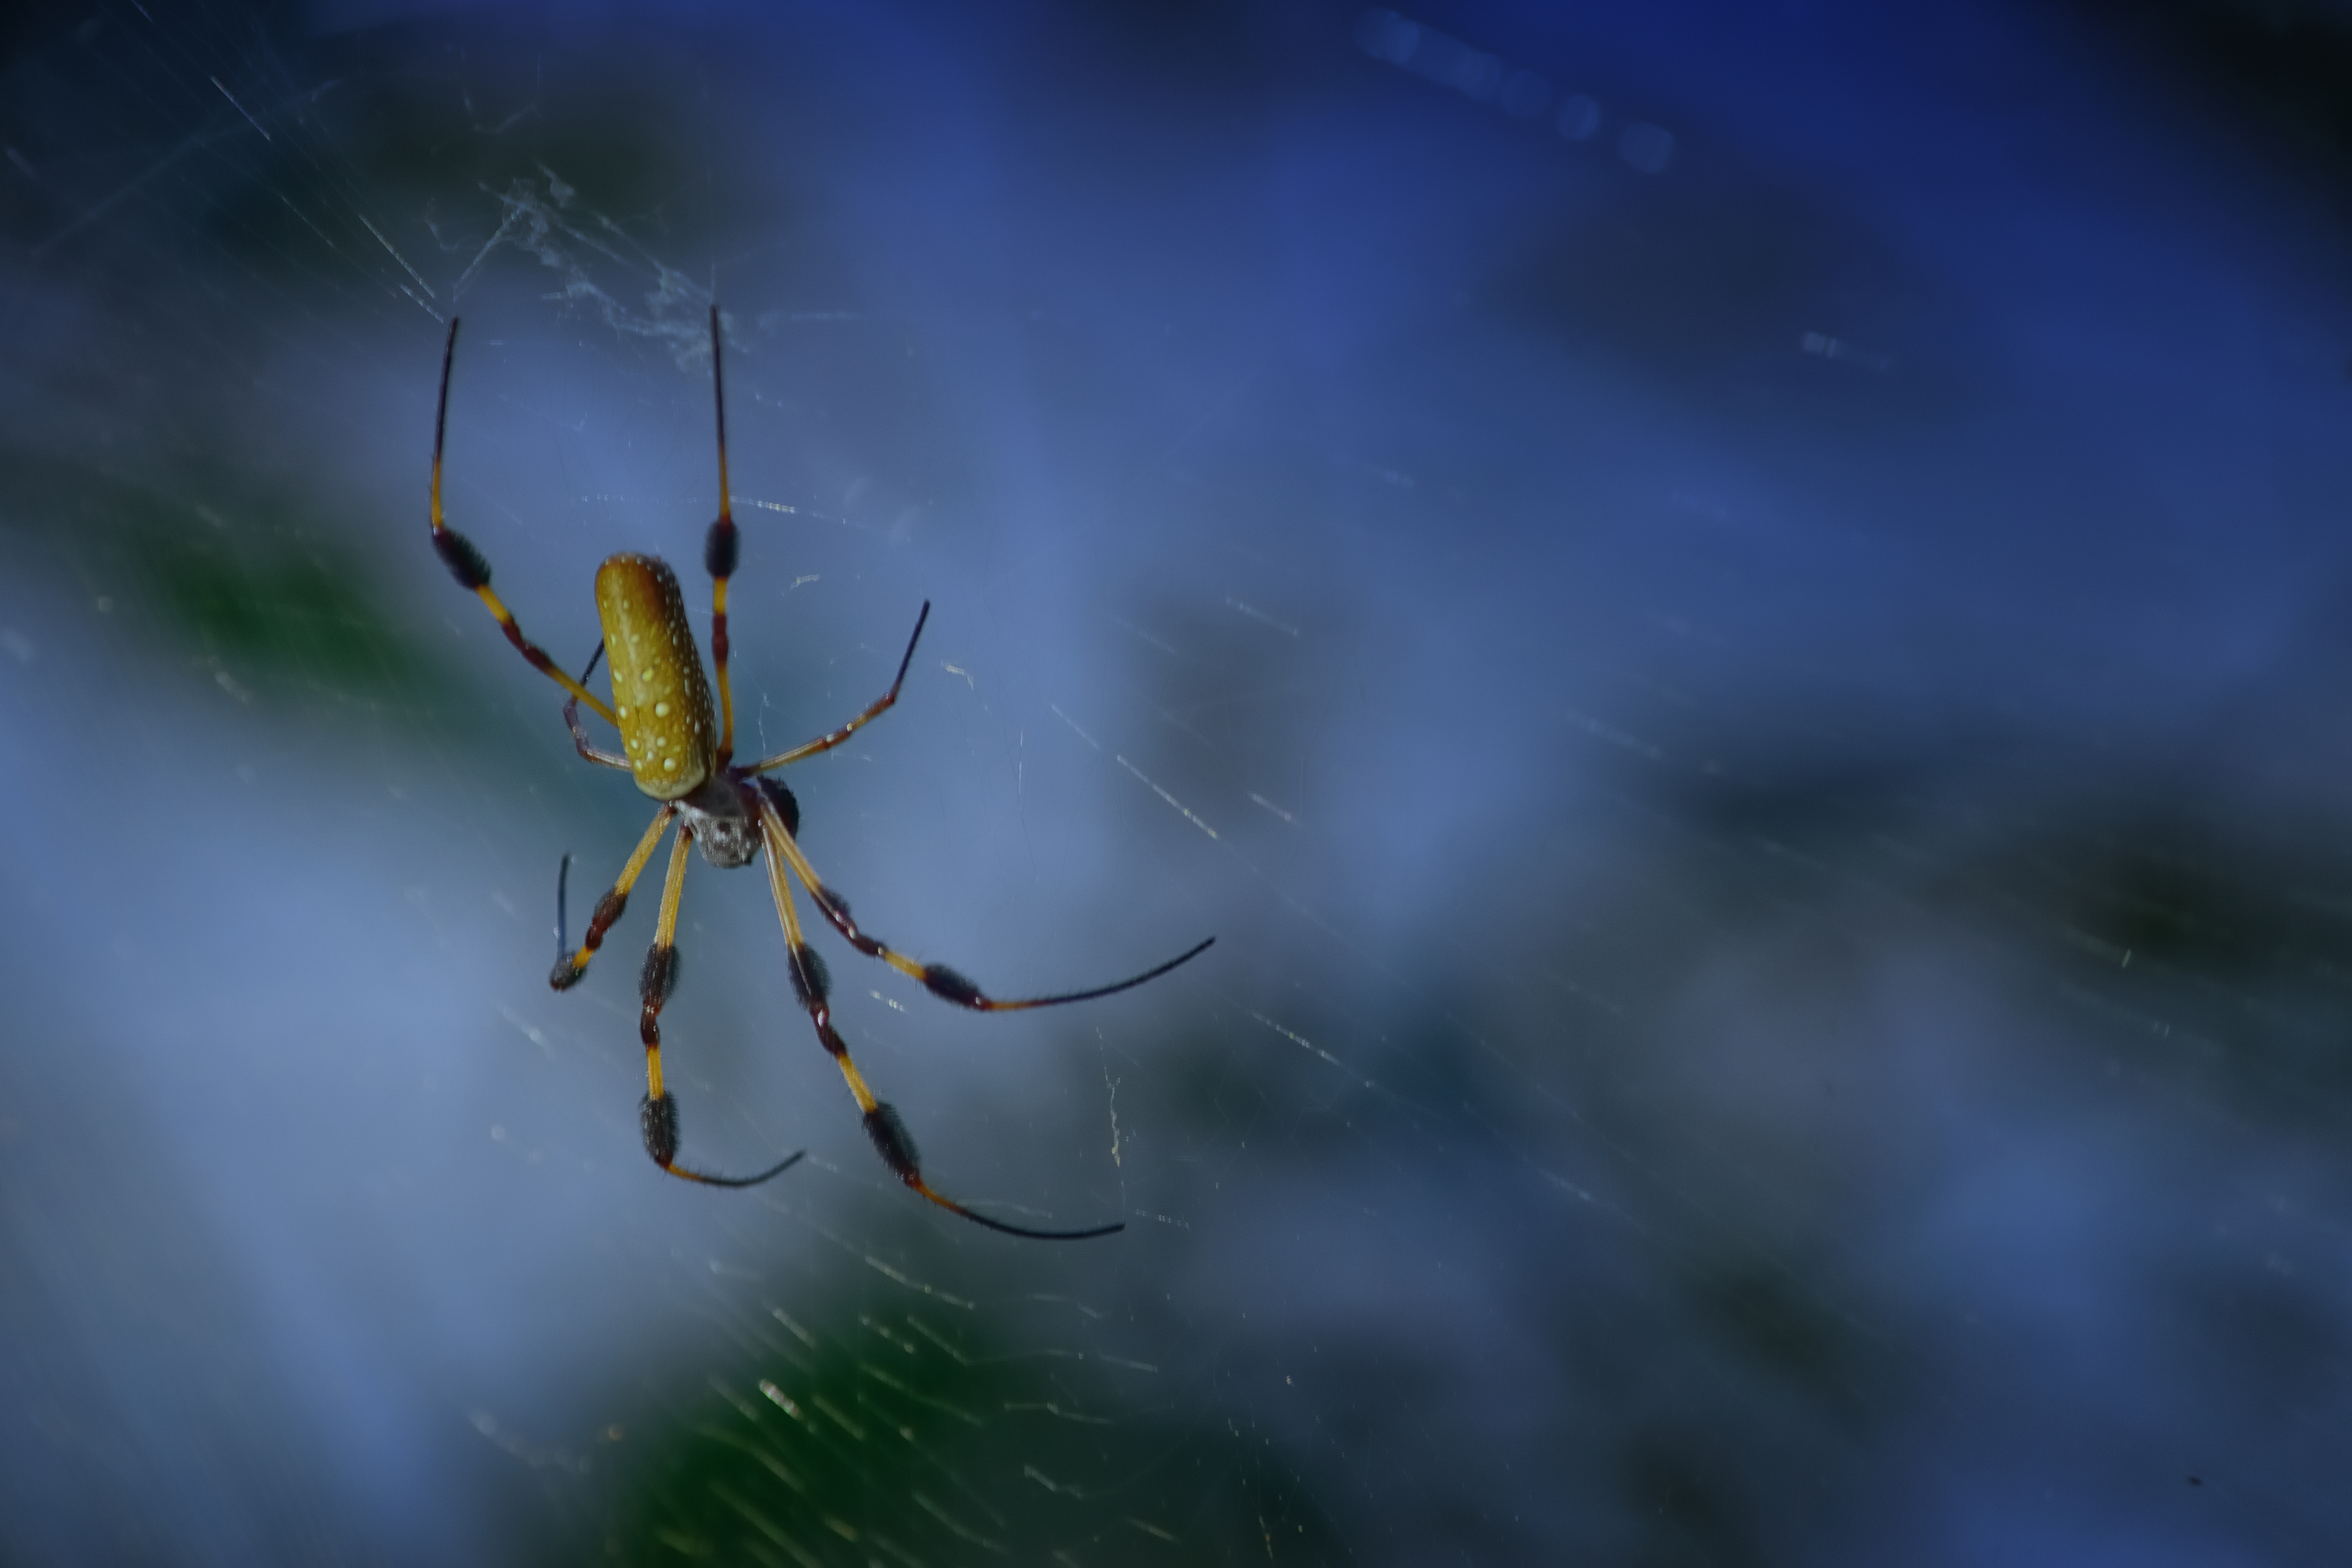 Golden Silk Orb-weaver spider - 0107